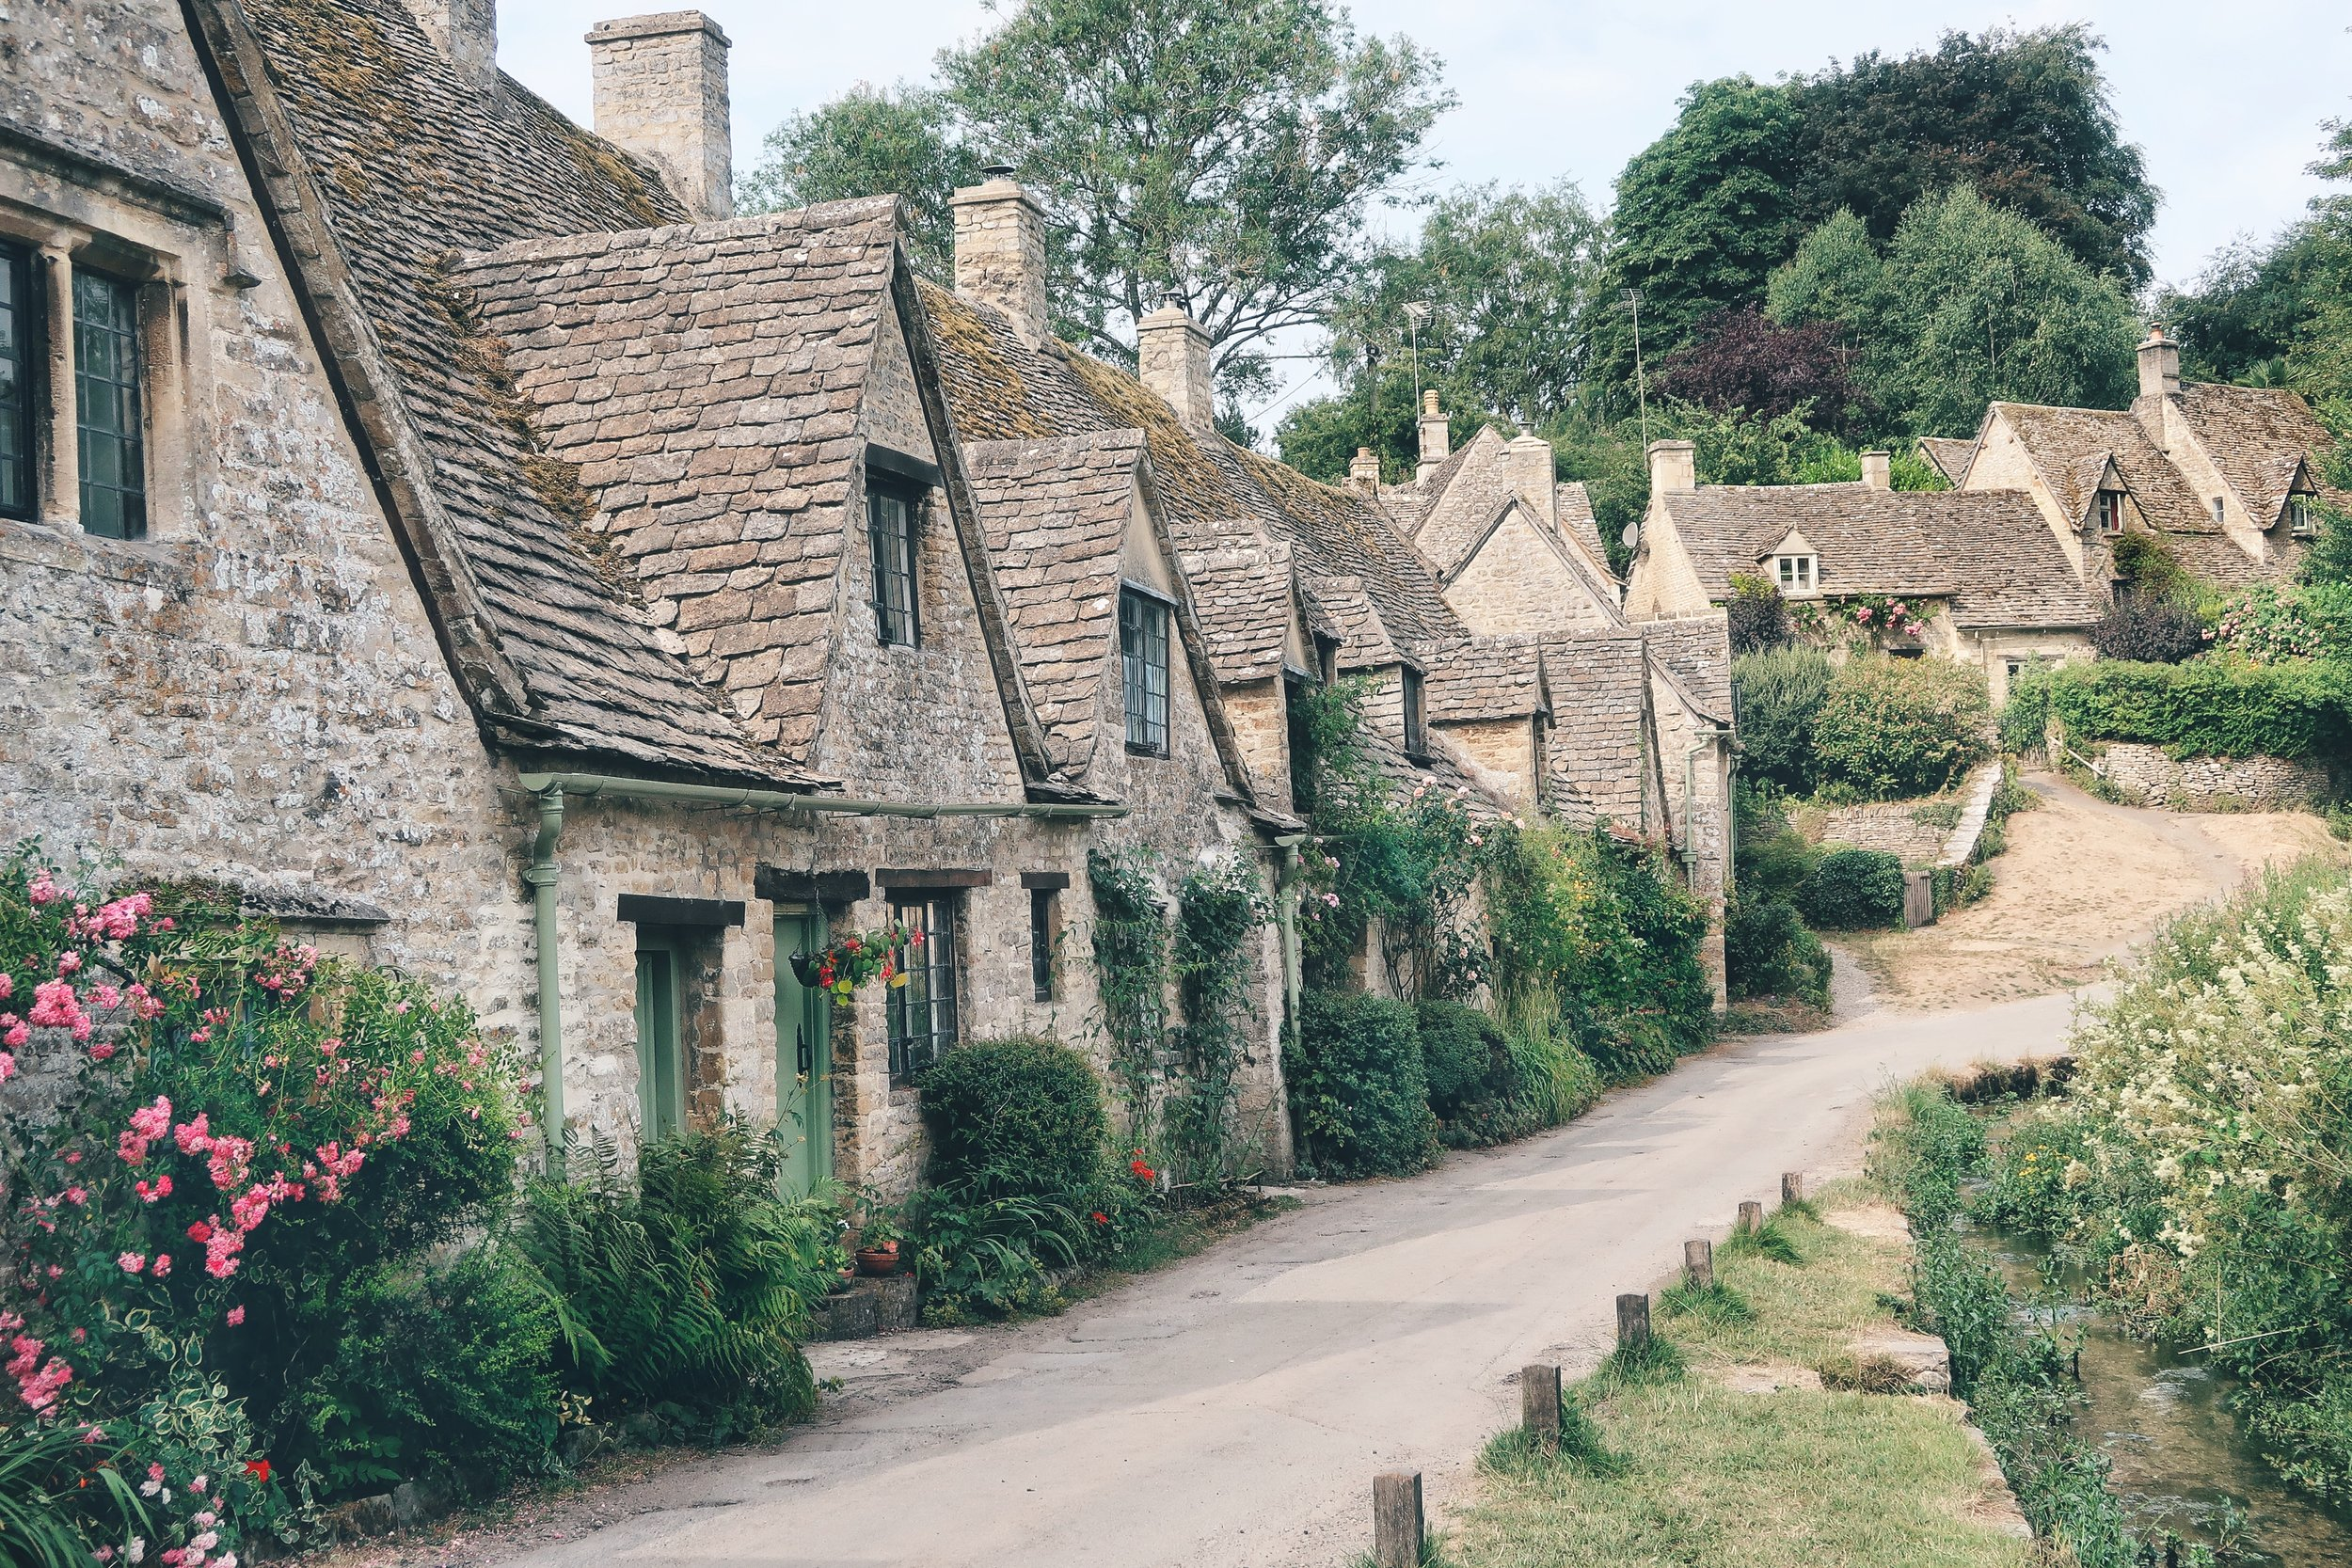 Things to do in Bibury